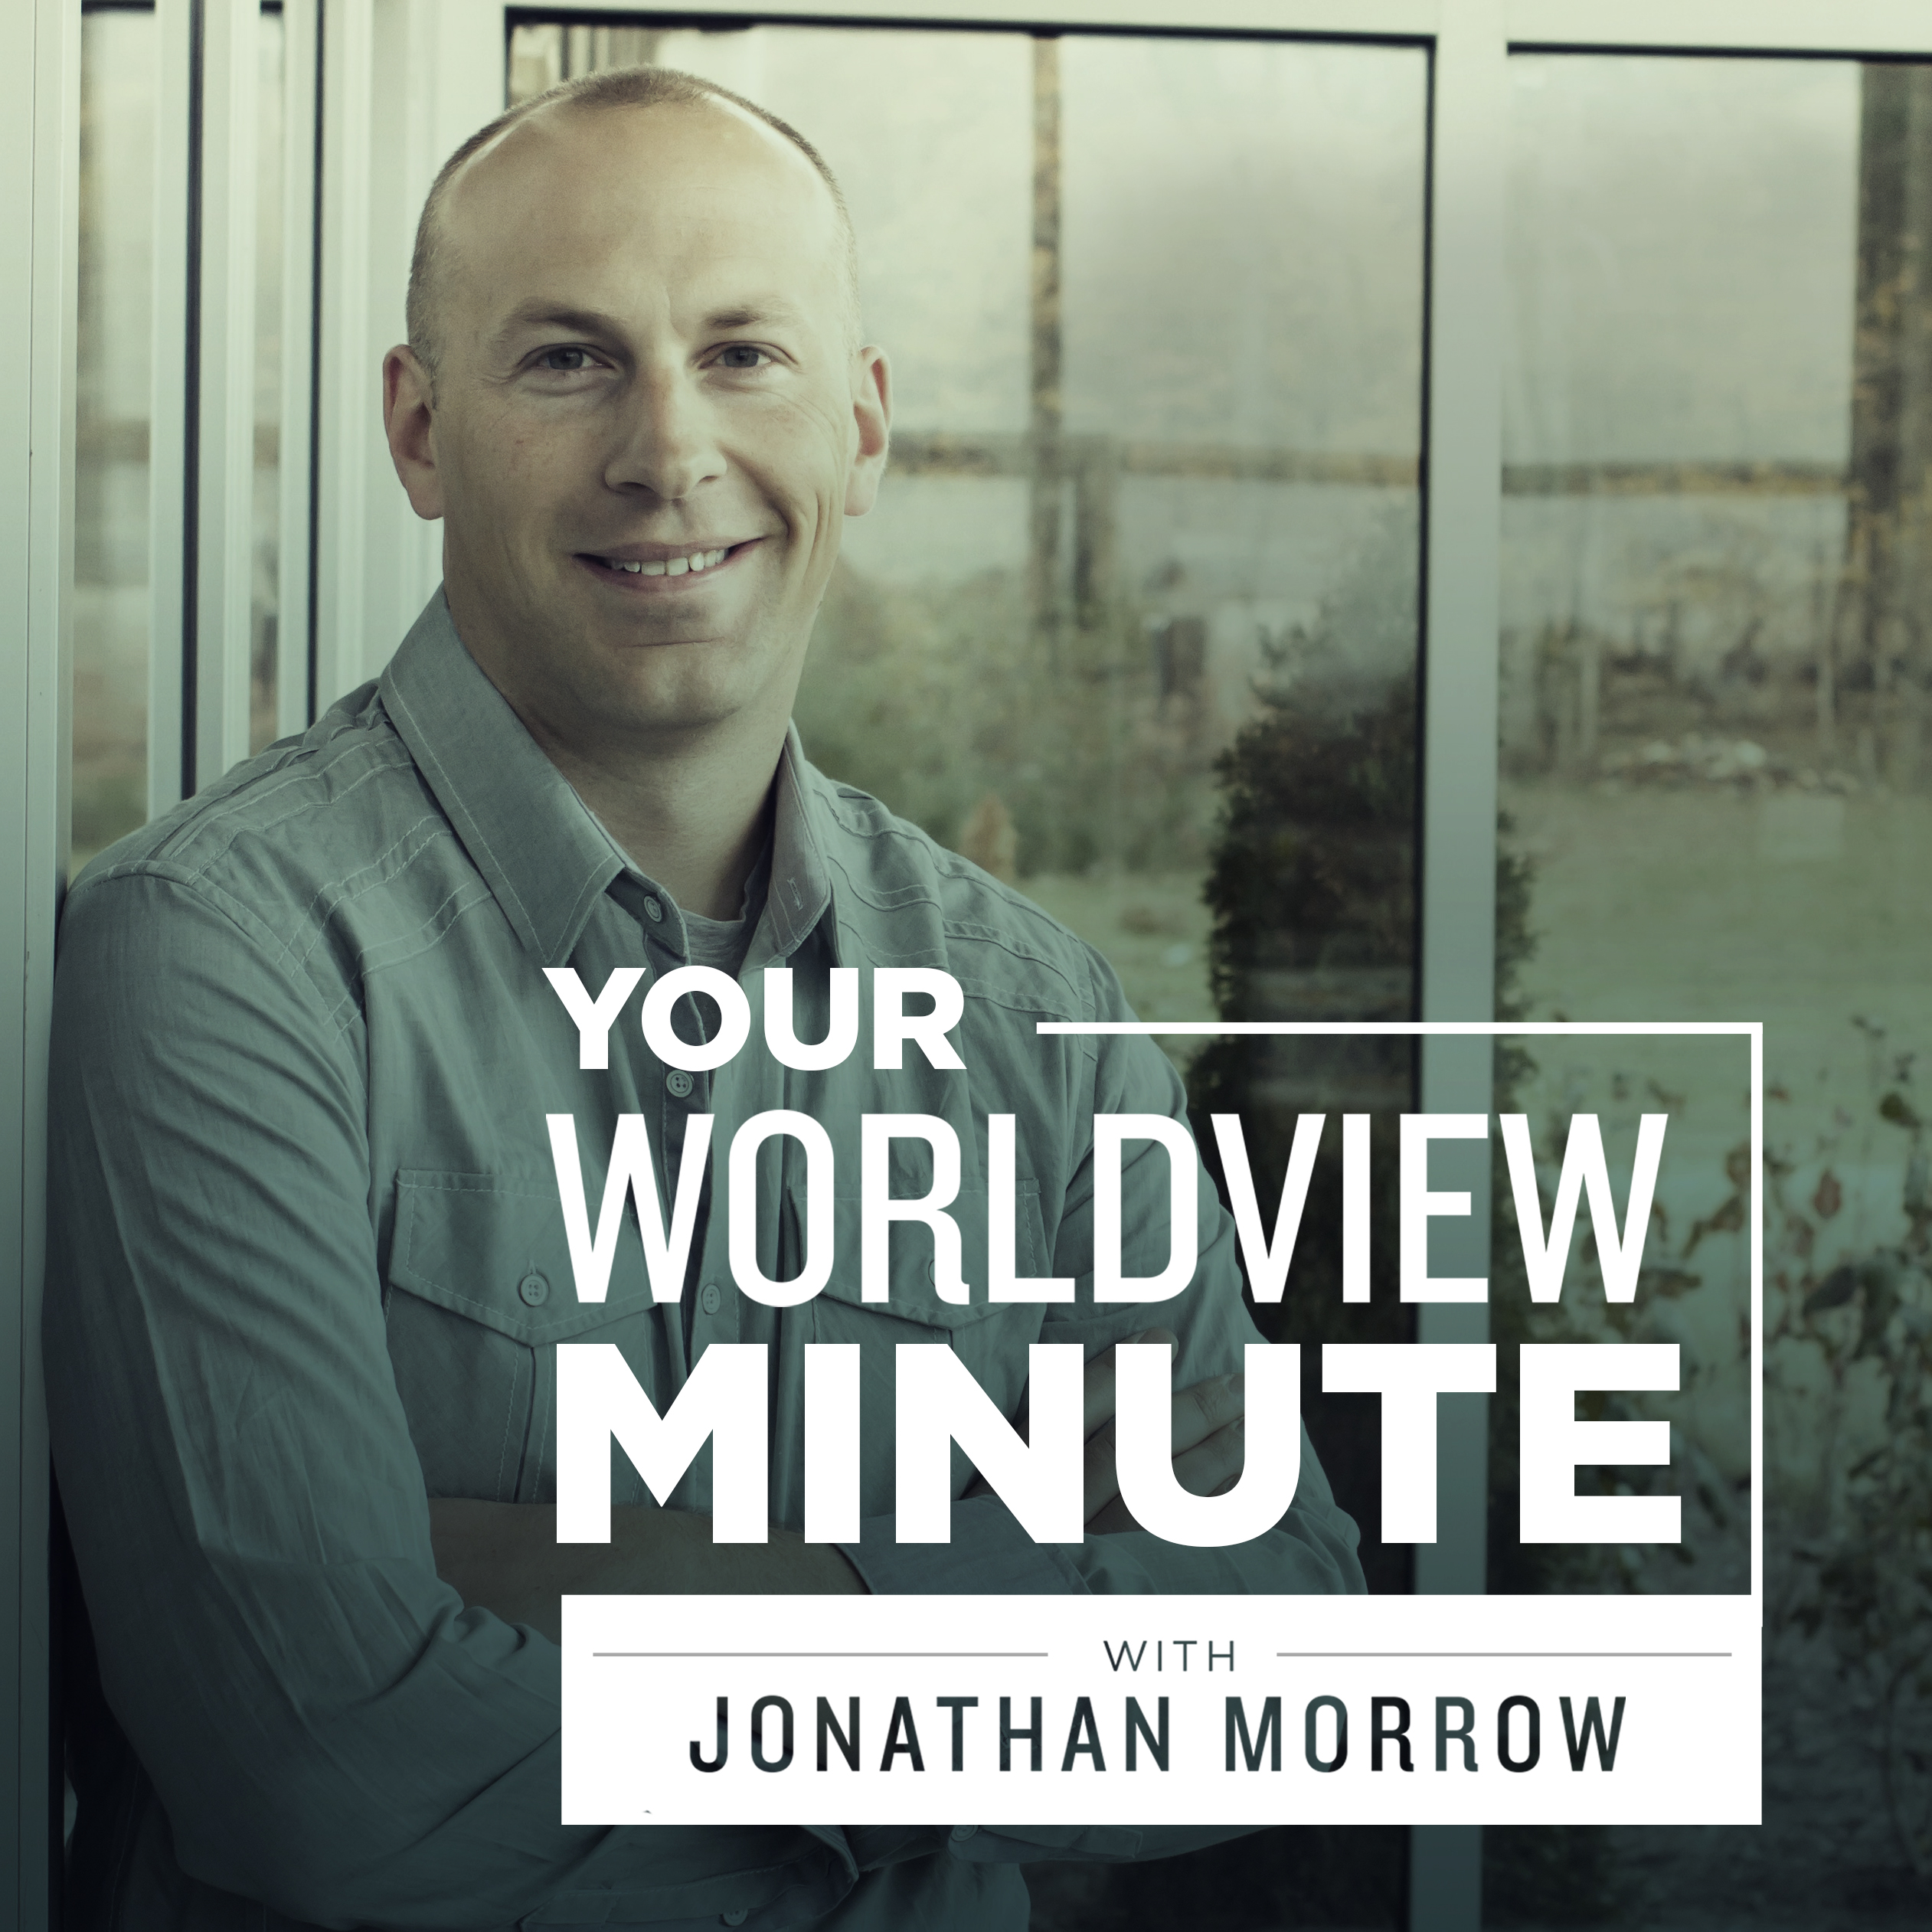 Your Worldview Minute with Jonathan Morrow